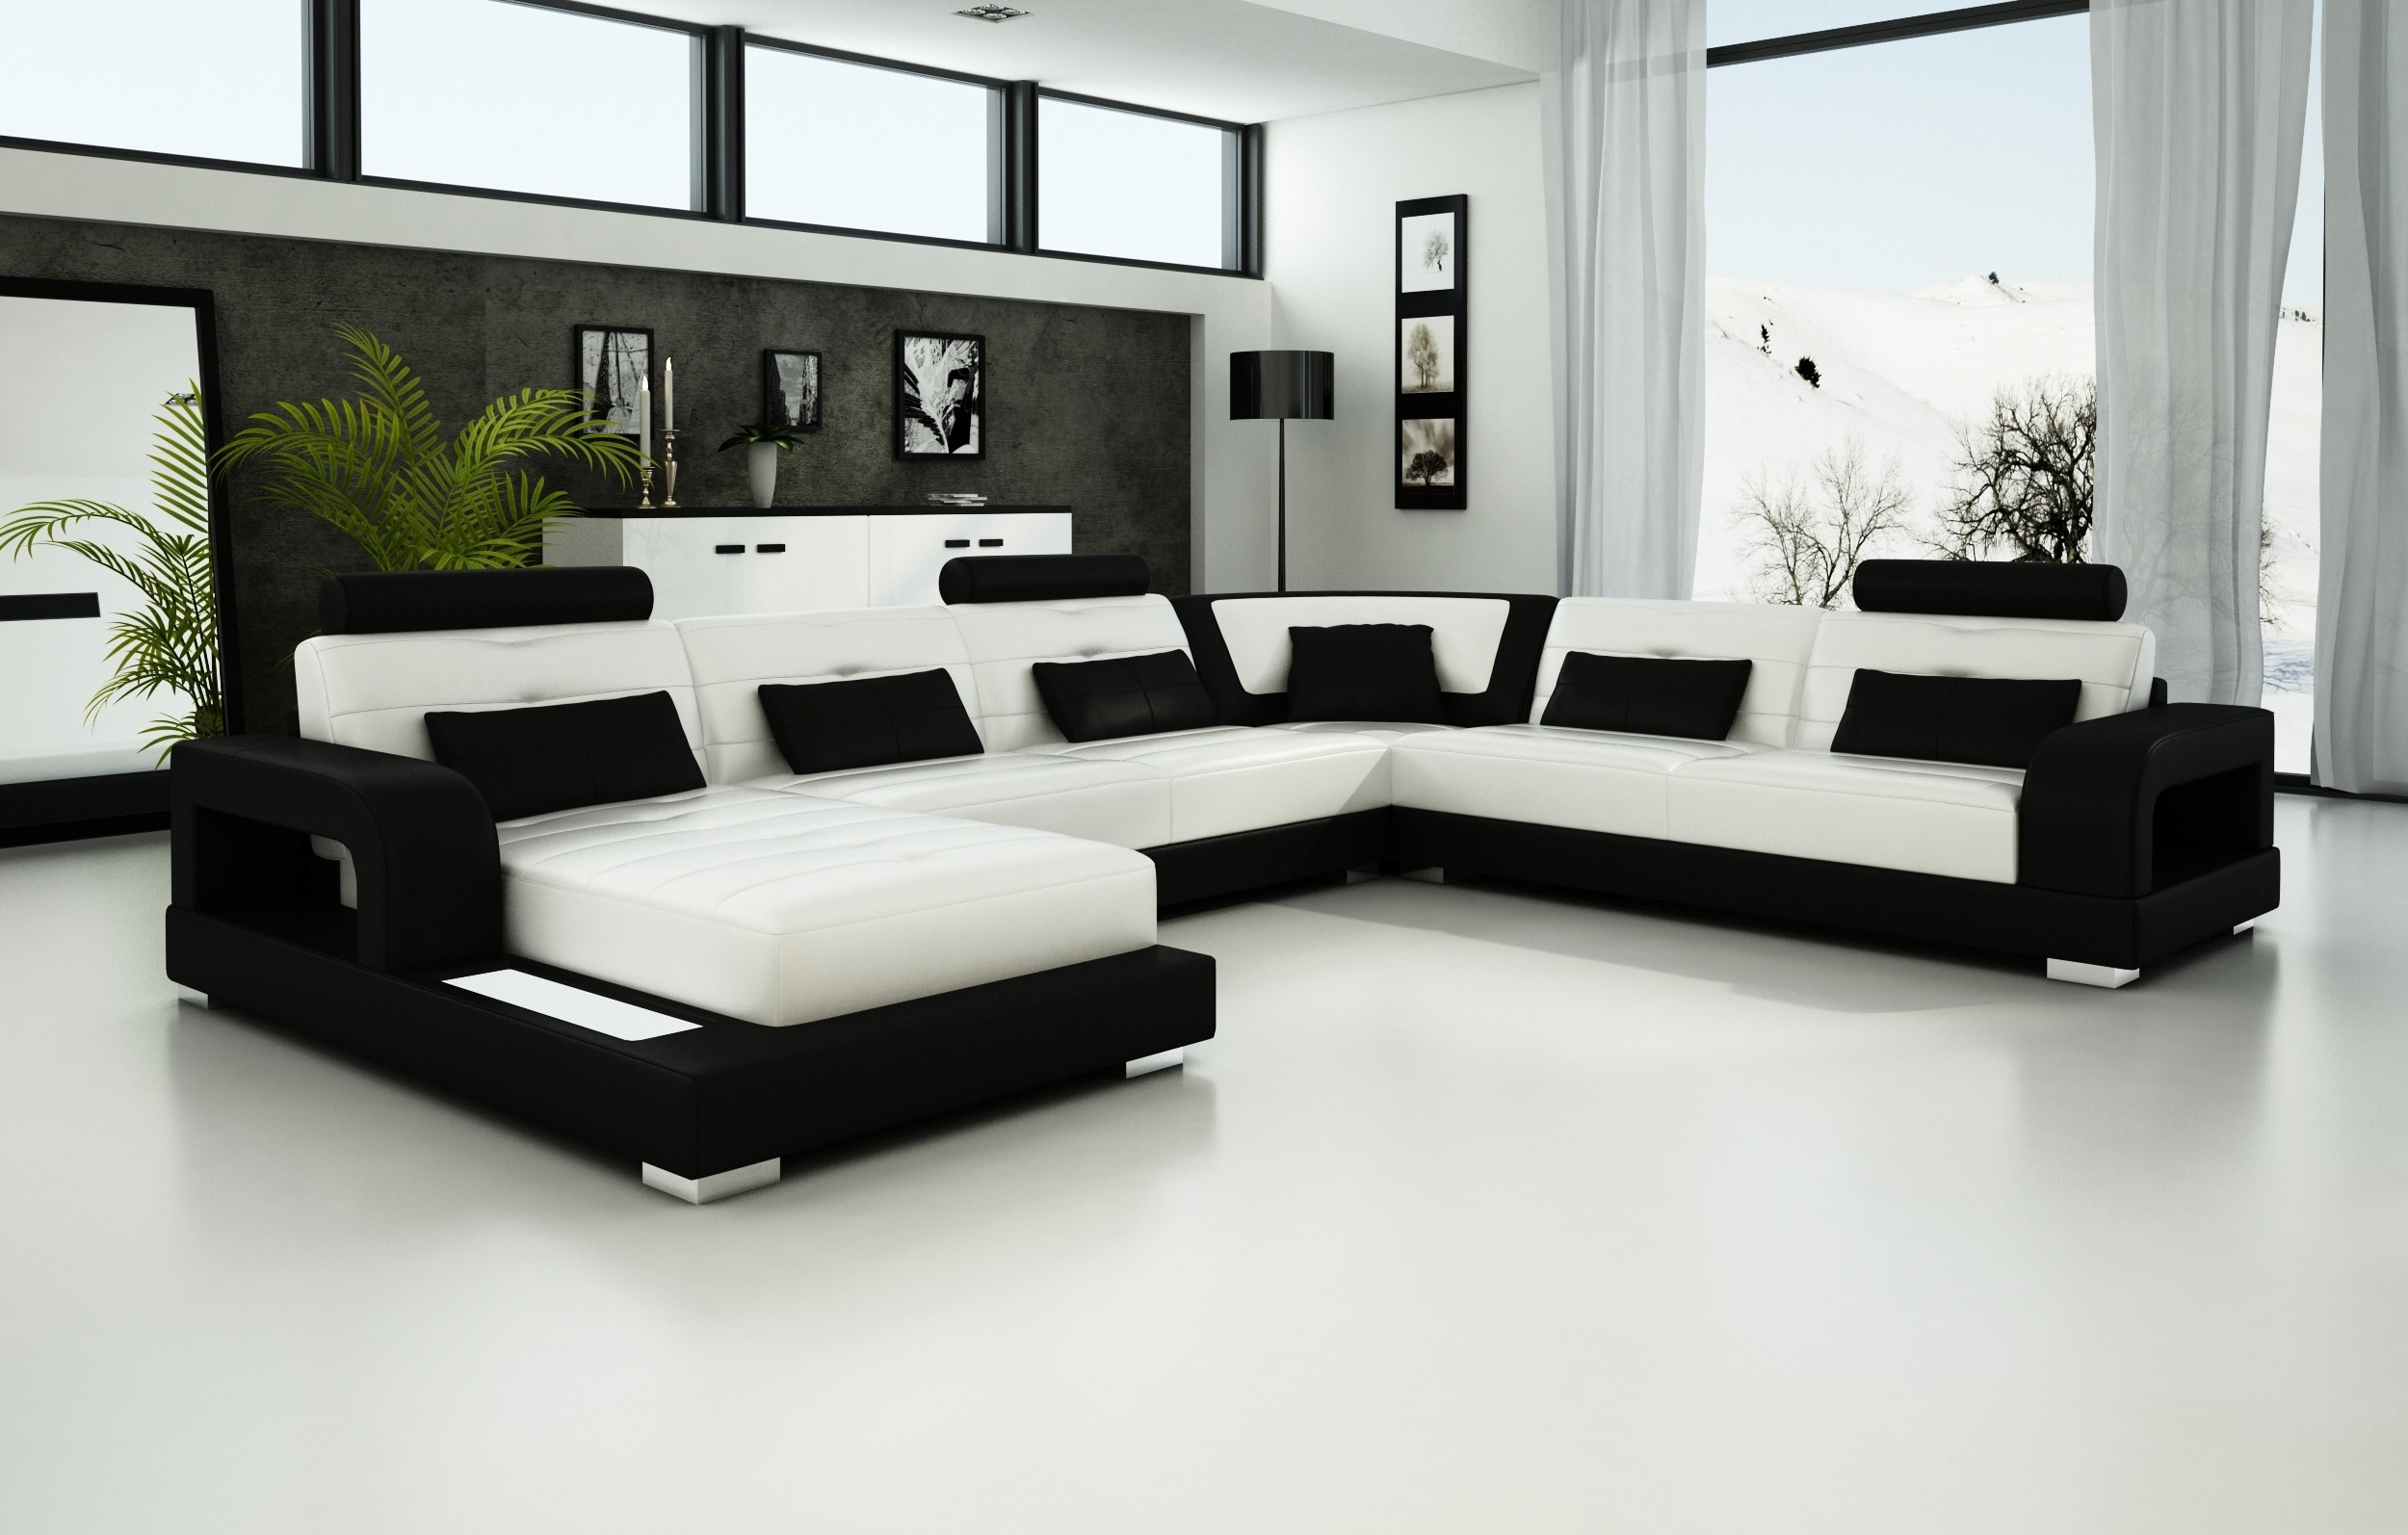 Olympian Sofas Pesaro White-Black Leather Sofa - Sectional Sofas pertaining to Trinidad And Tobago Sectional Sofas